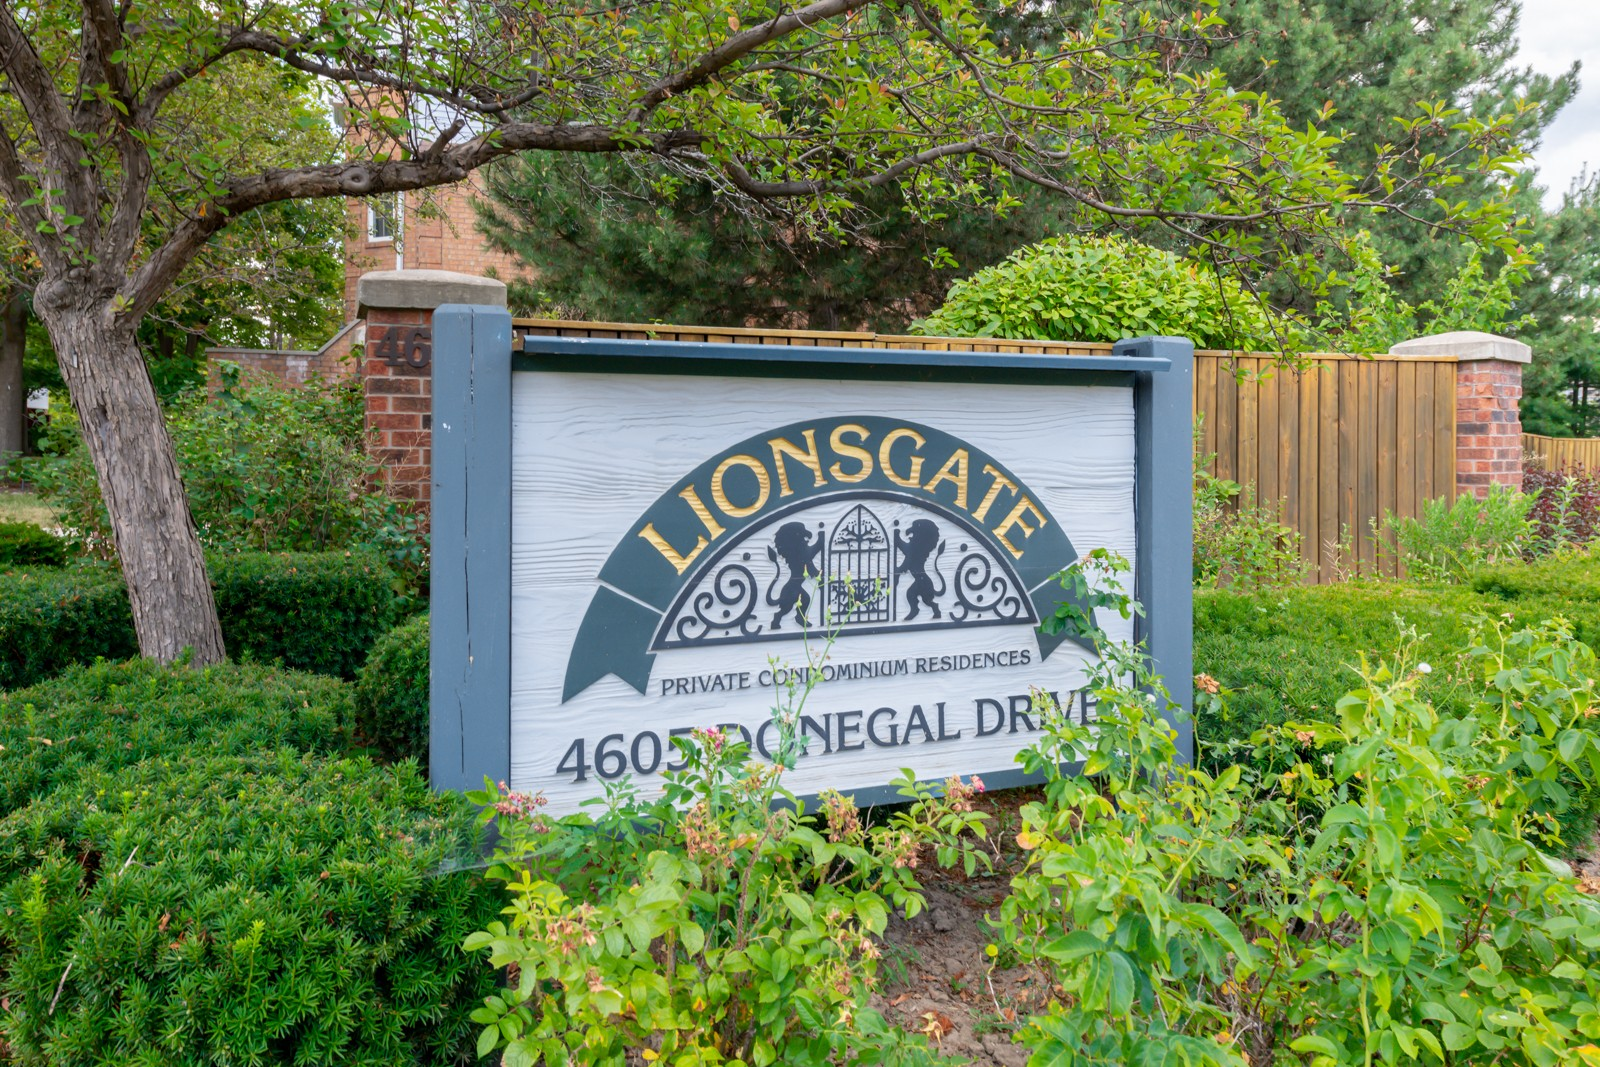 Lionsgate Private Condominium Residences at 4605 Donegal Dr, Mississauga 1